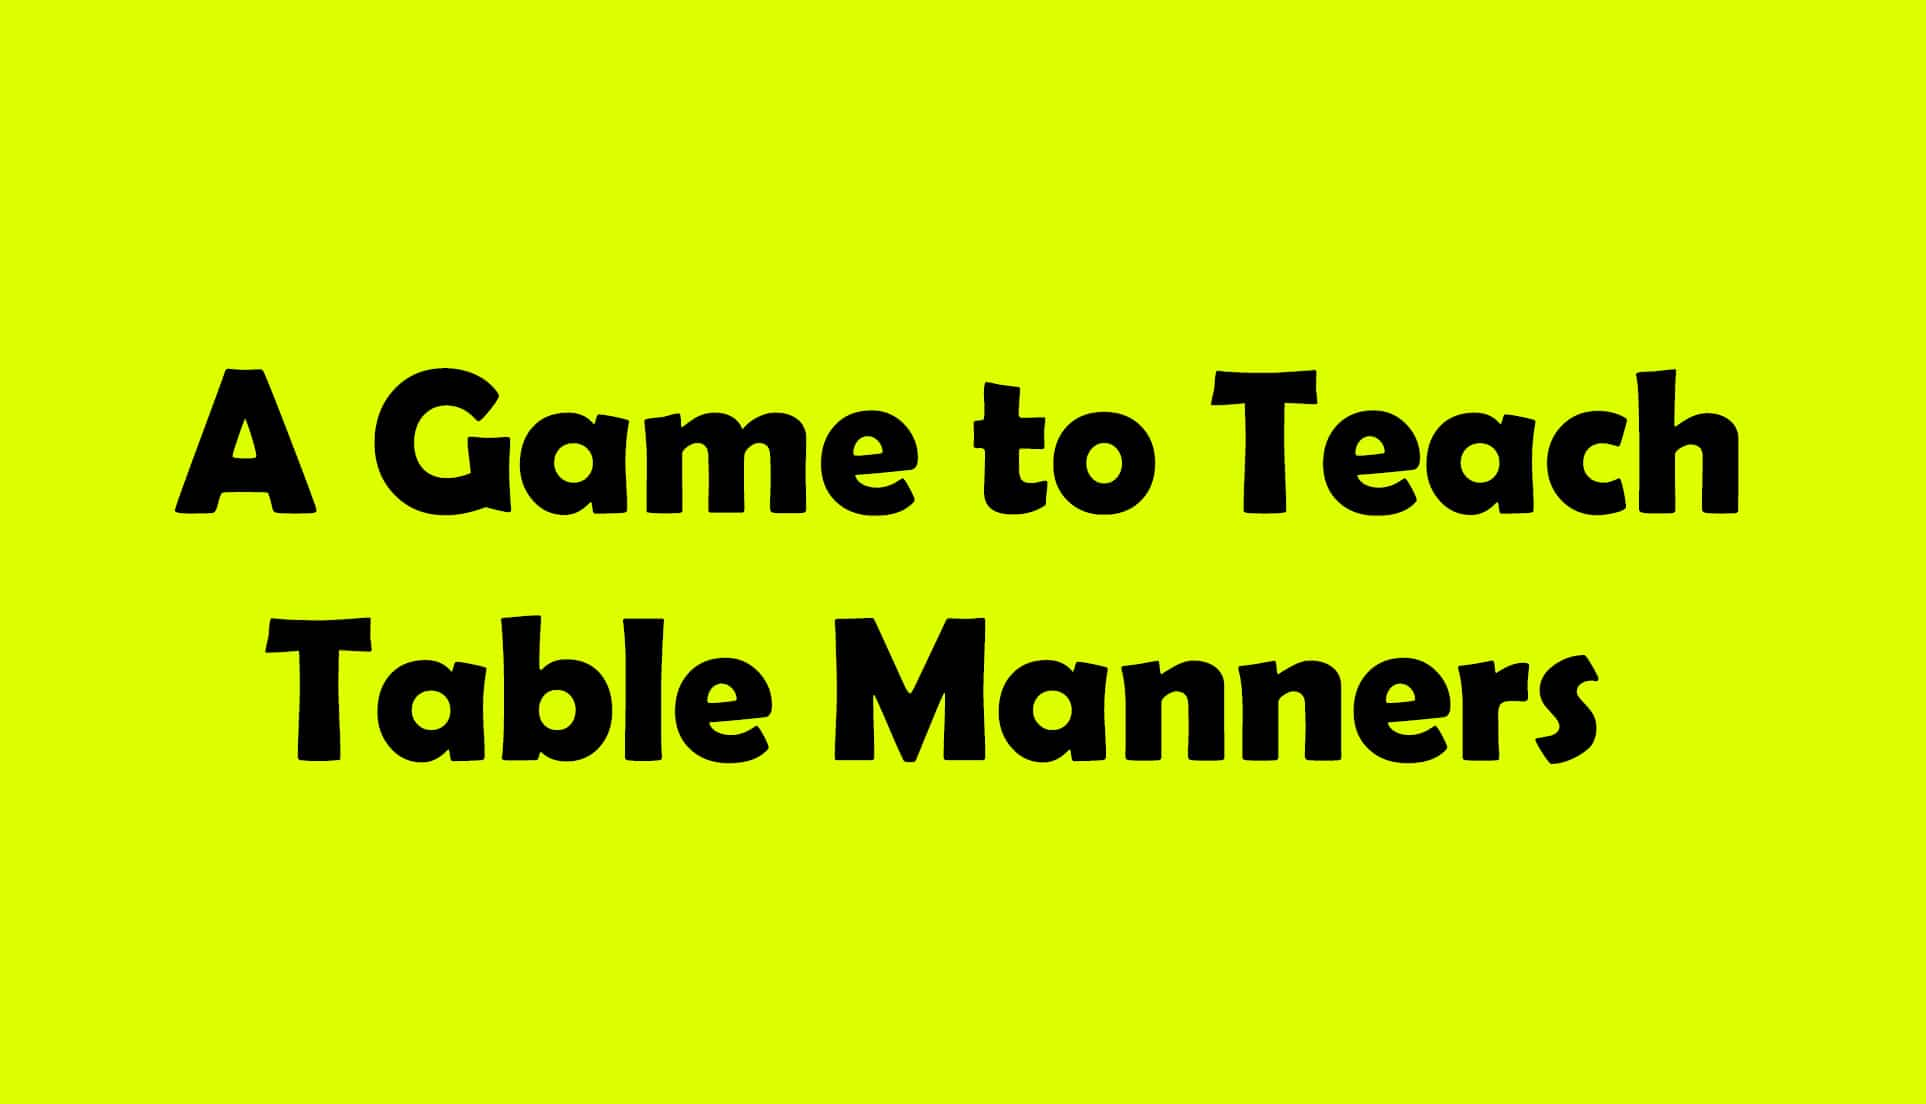 A Game to Teach Table Manners